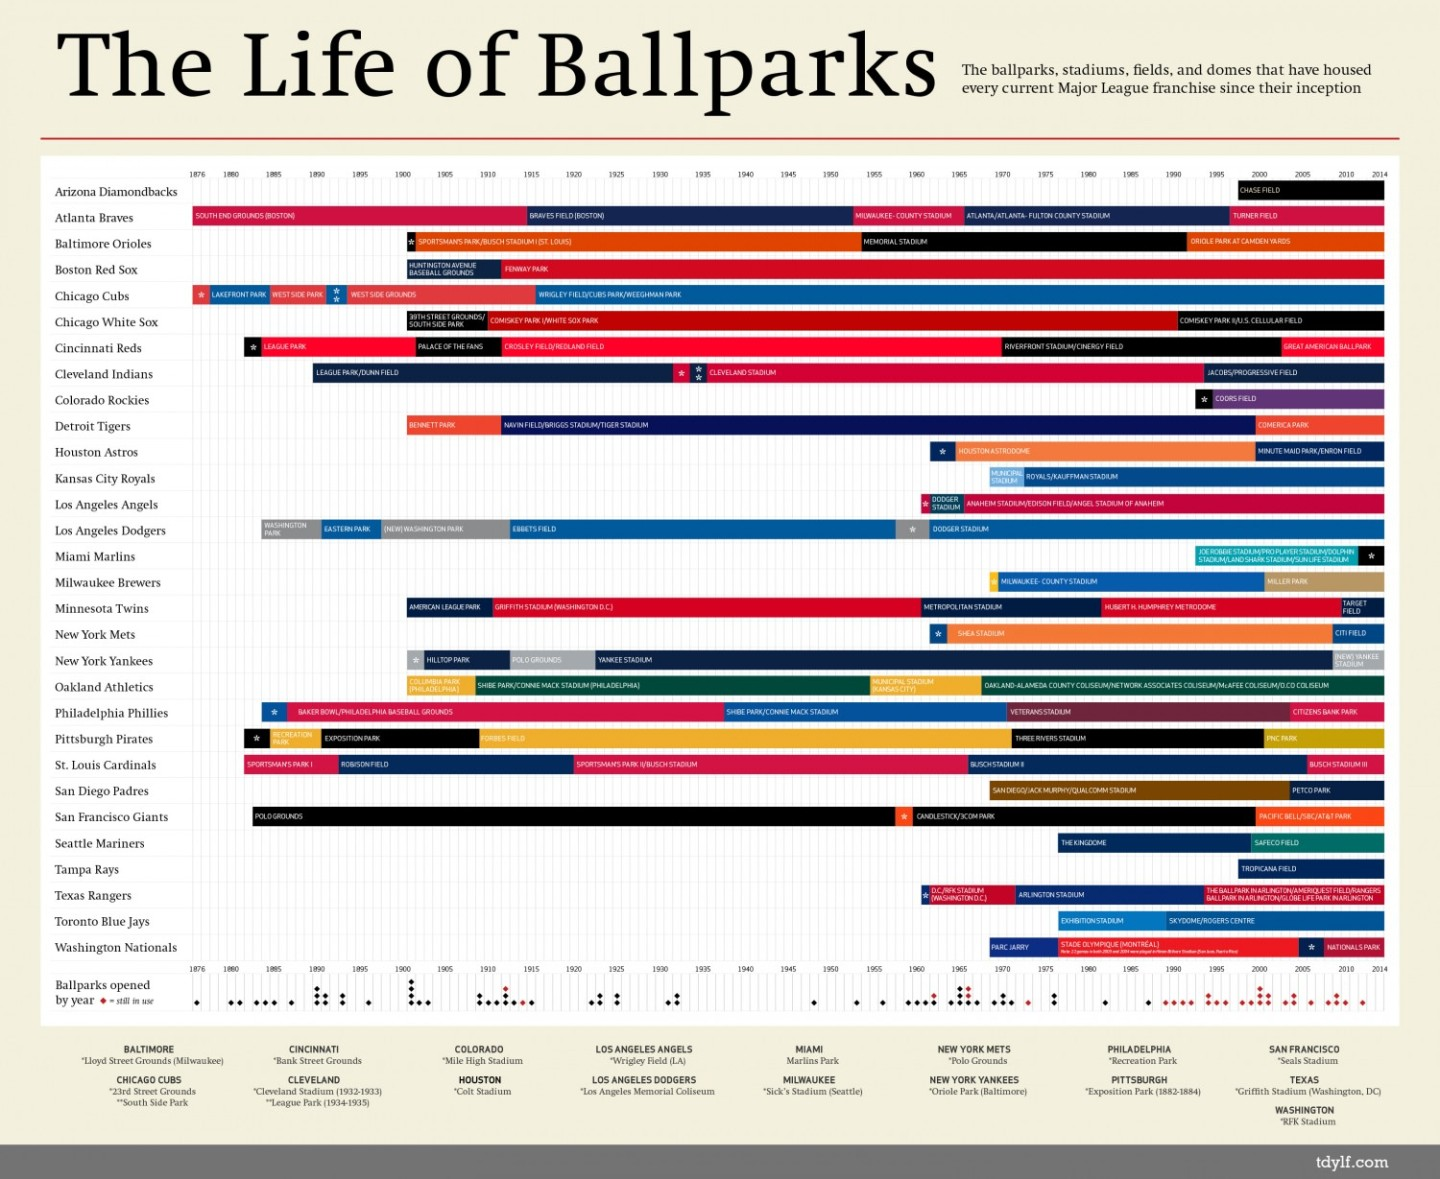 the life of ballparks